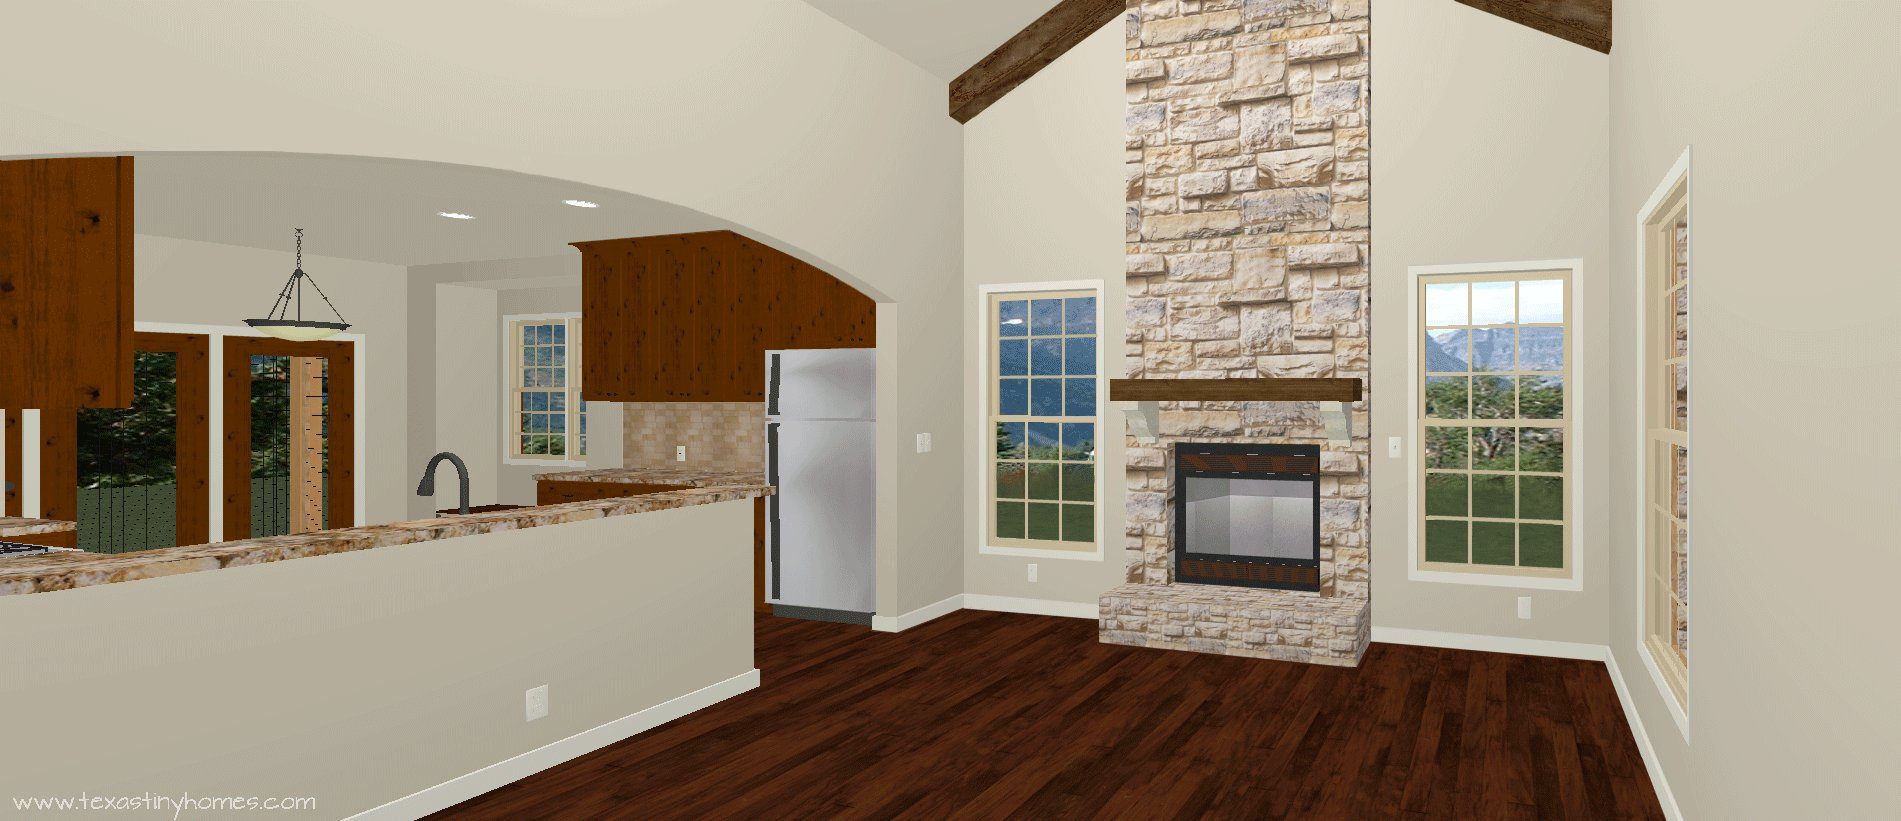 Fine Texas Tiny Homes Designs Builds And Markets House Plans Largest Home Design Picture Inspirations Pitcheantrous